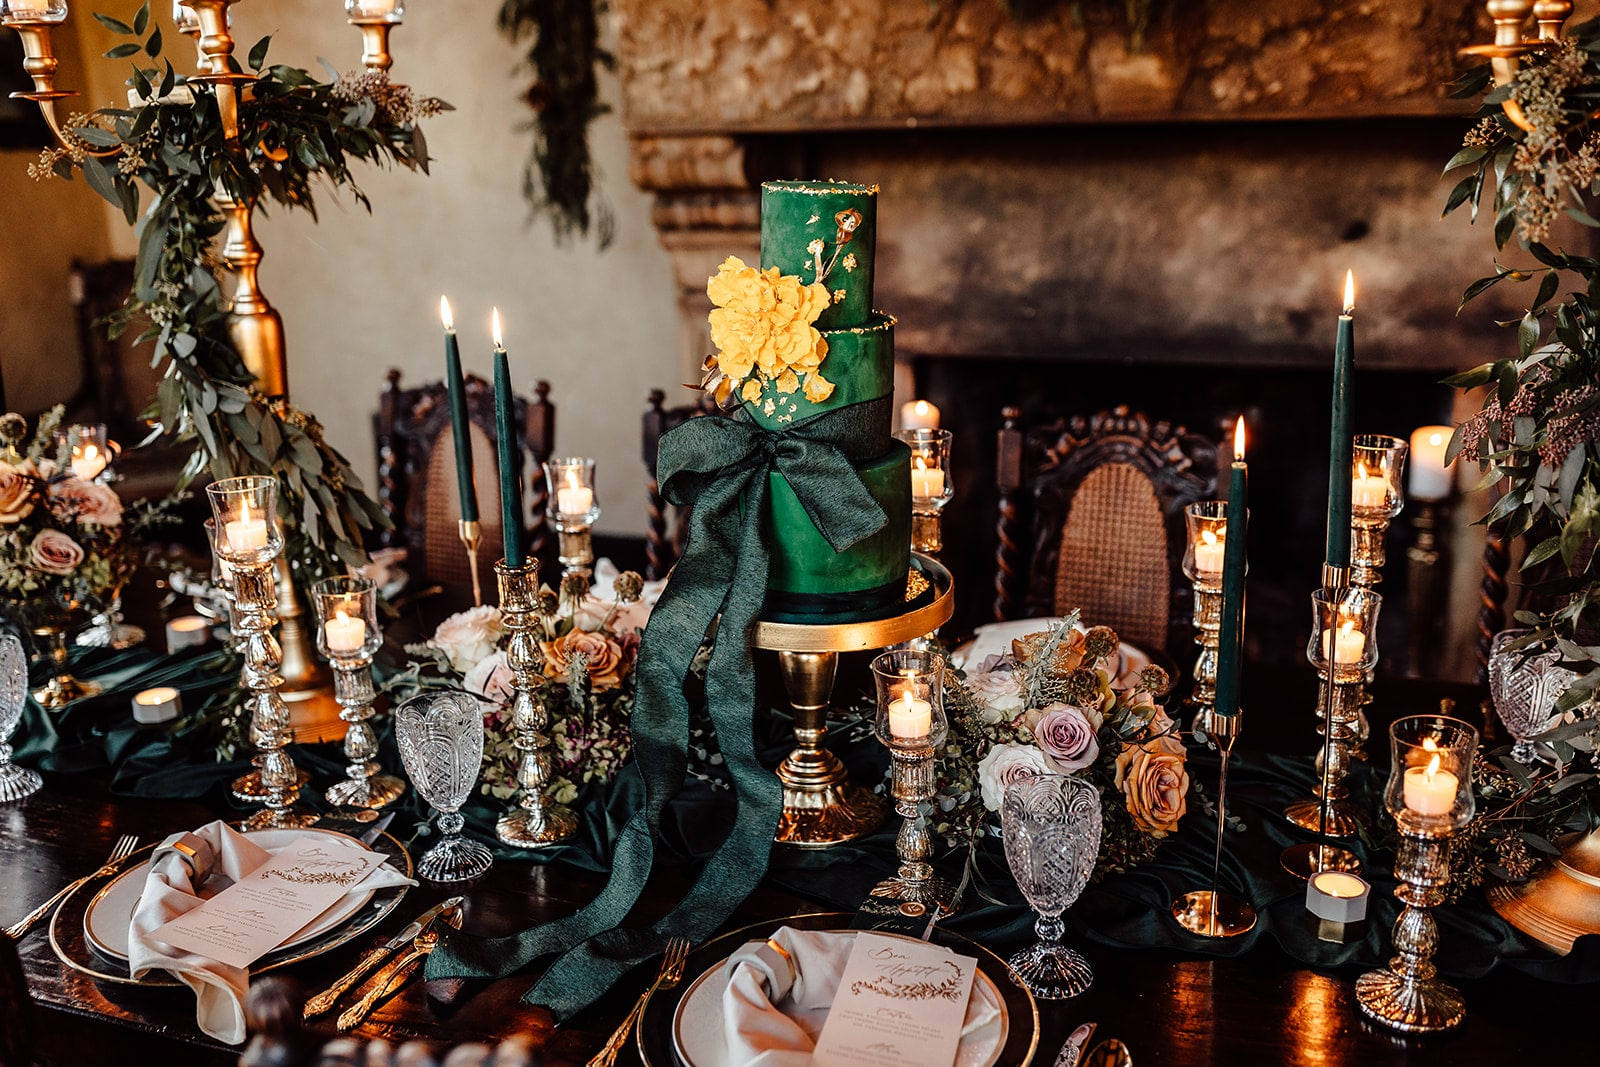 emerald green cake in the middle of wedding decorated table with elegant emerald green and gold decor cake with giant emerald green bow on the bottom tier